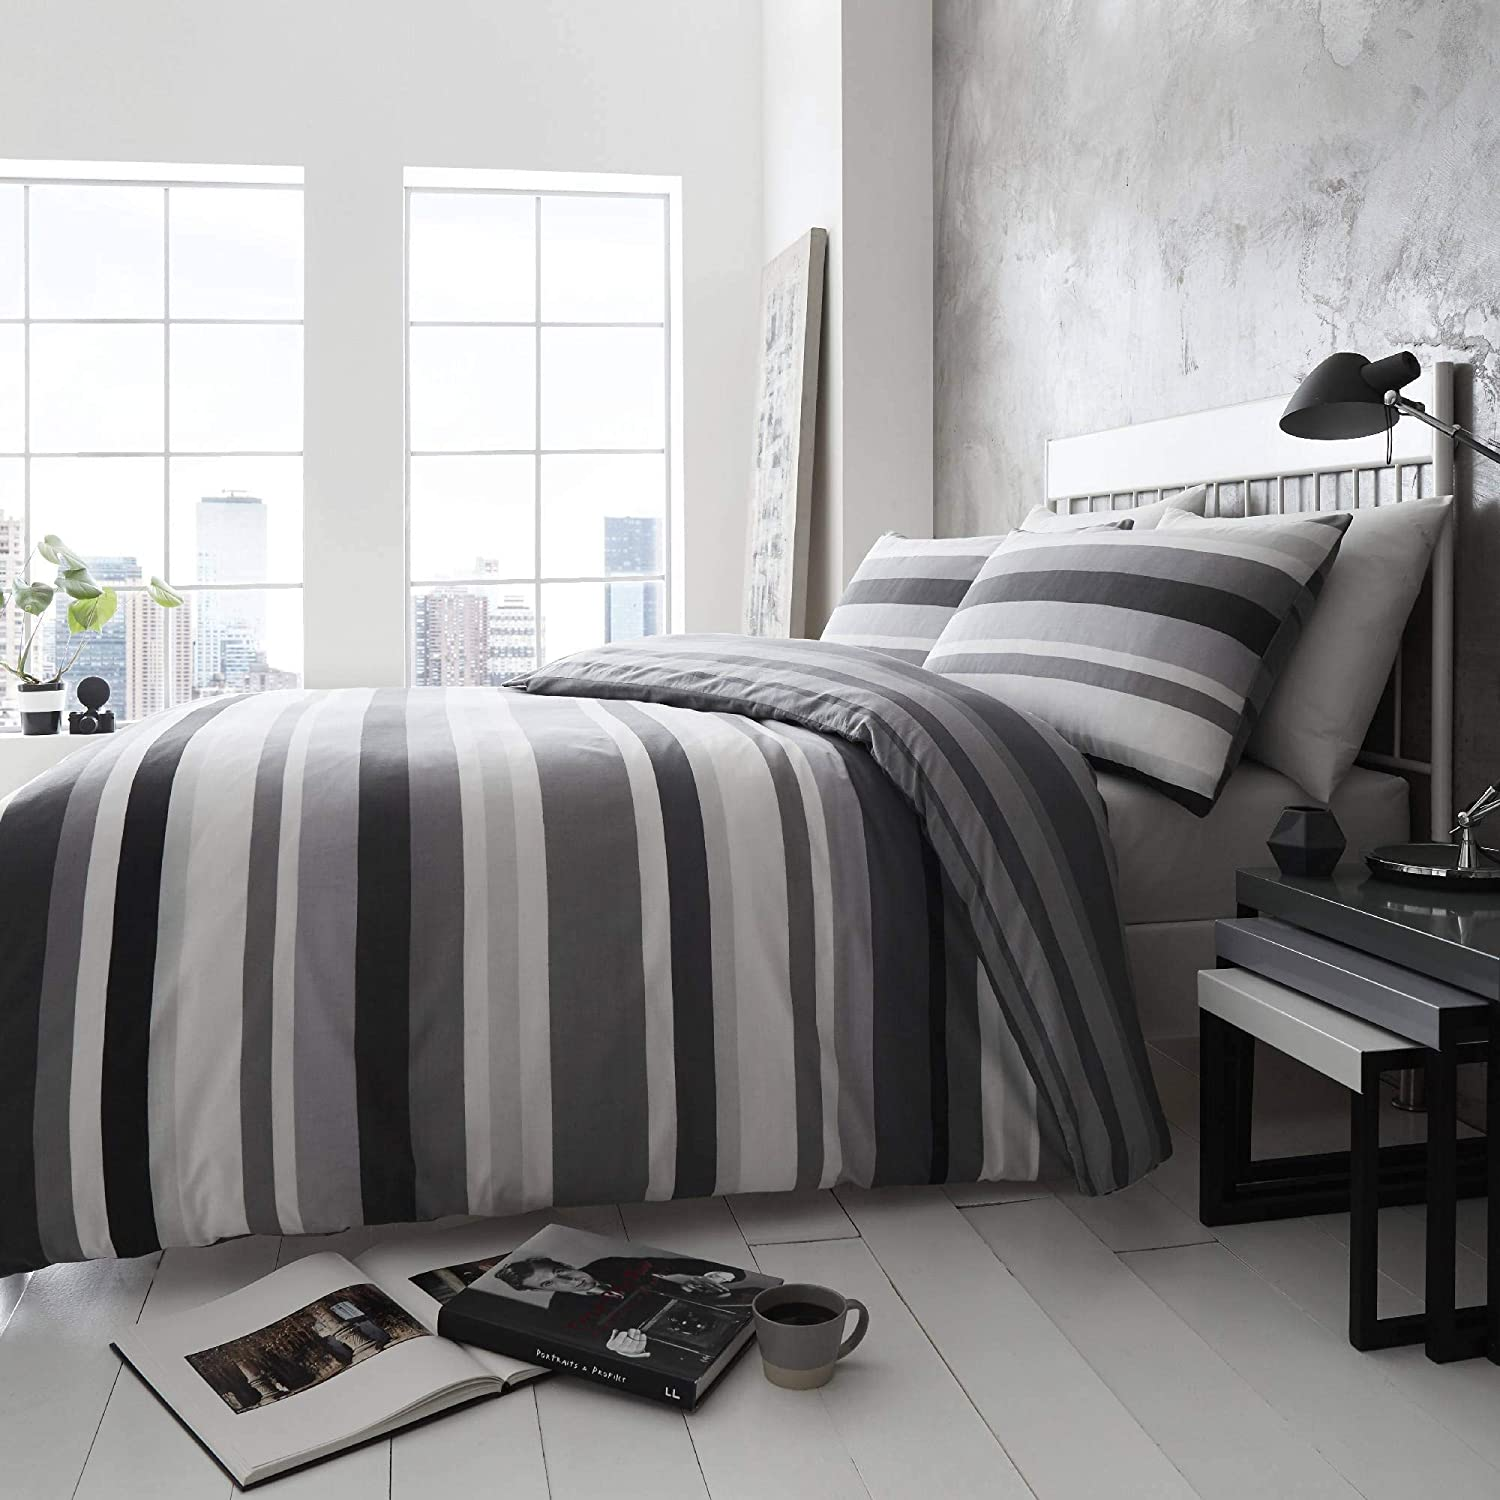 Happy Linen Company Simply Stripes Black Charcoal Grey White Single Reversible Duvet Cover Bedding Set Amazon Co Uk Kitchen Home